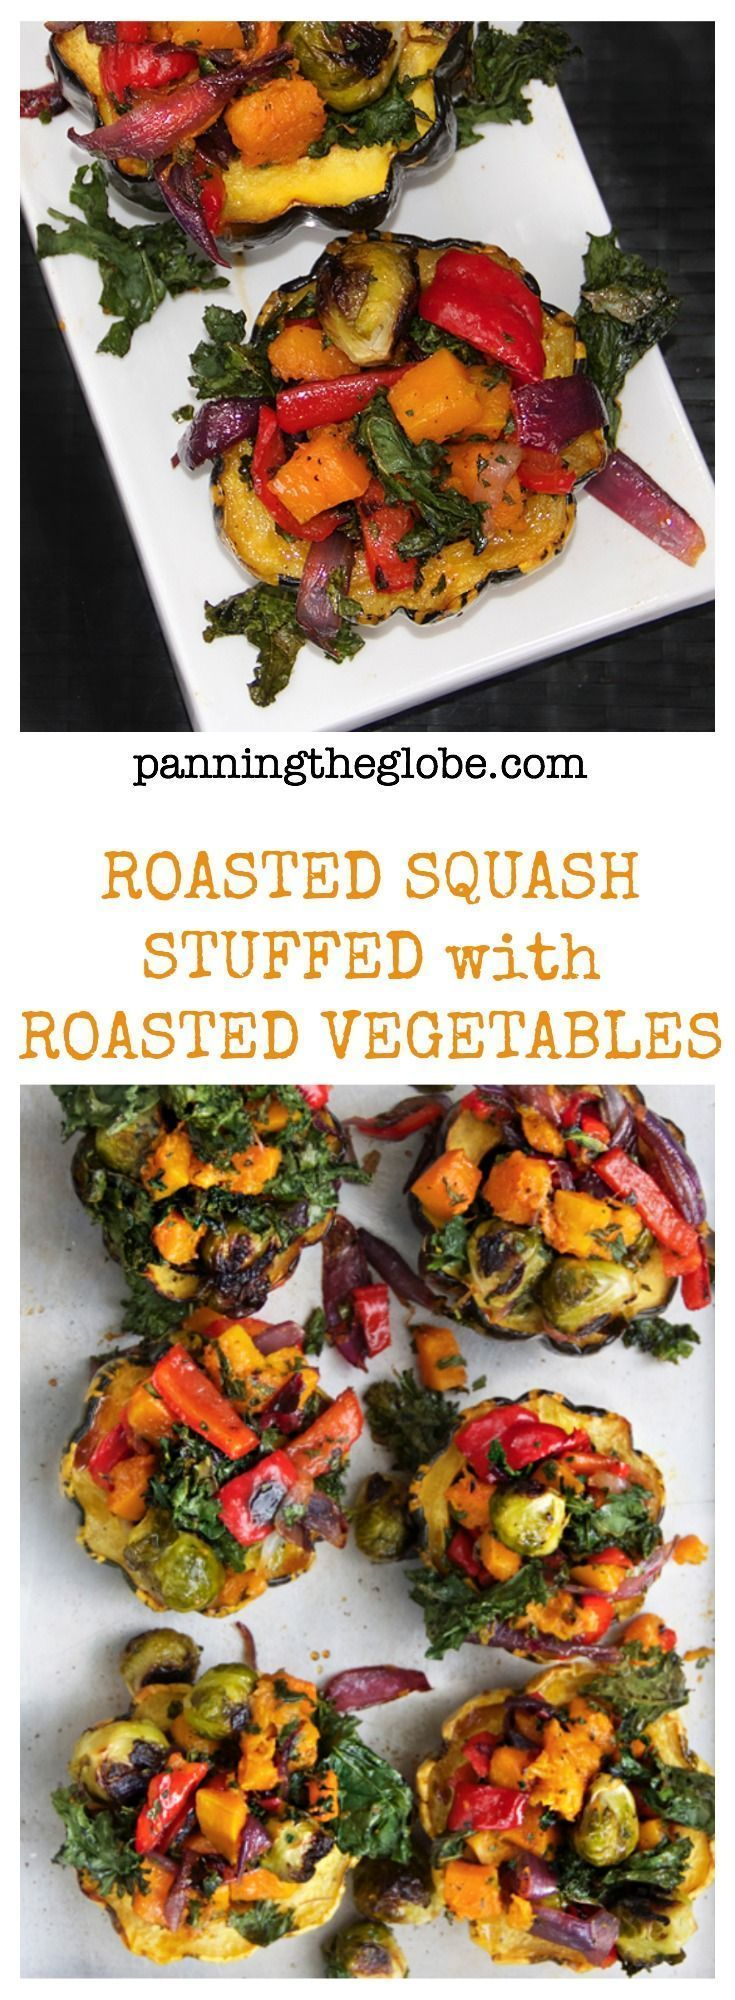 Roasted Squash stuffed with Roasted Vegetables • Panning The Globe